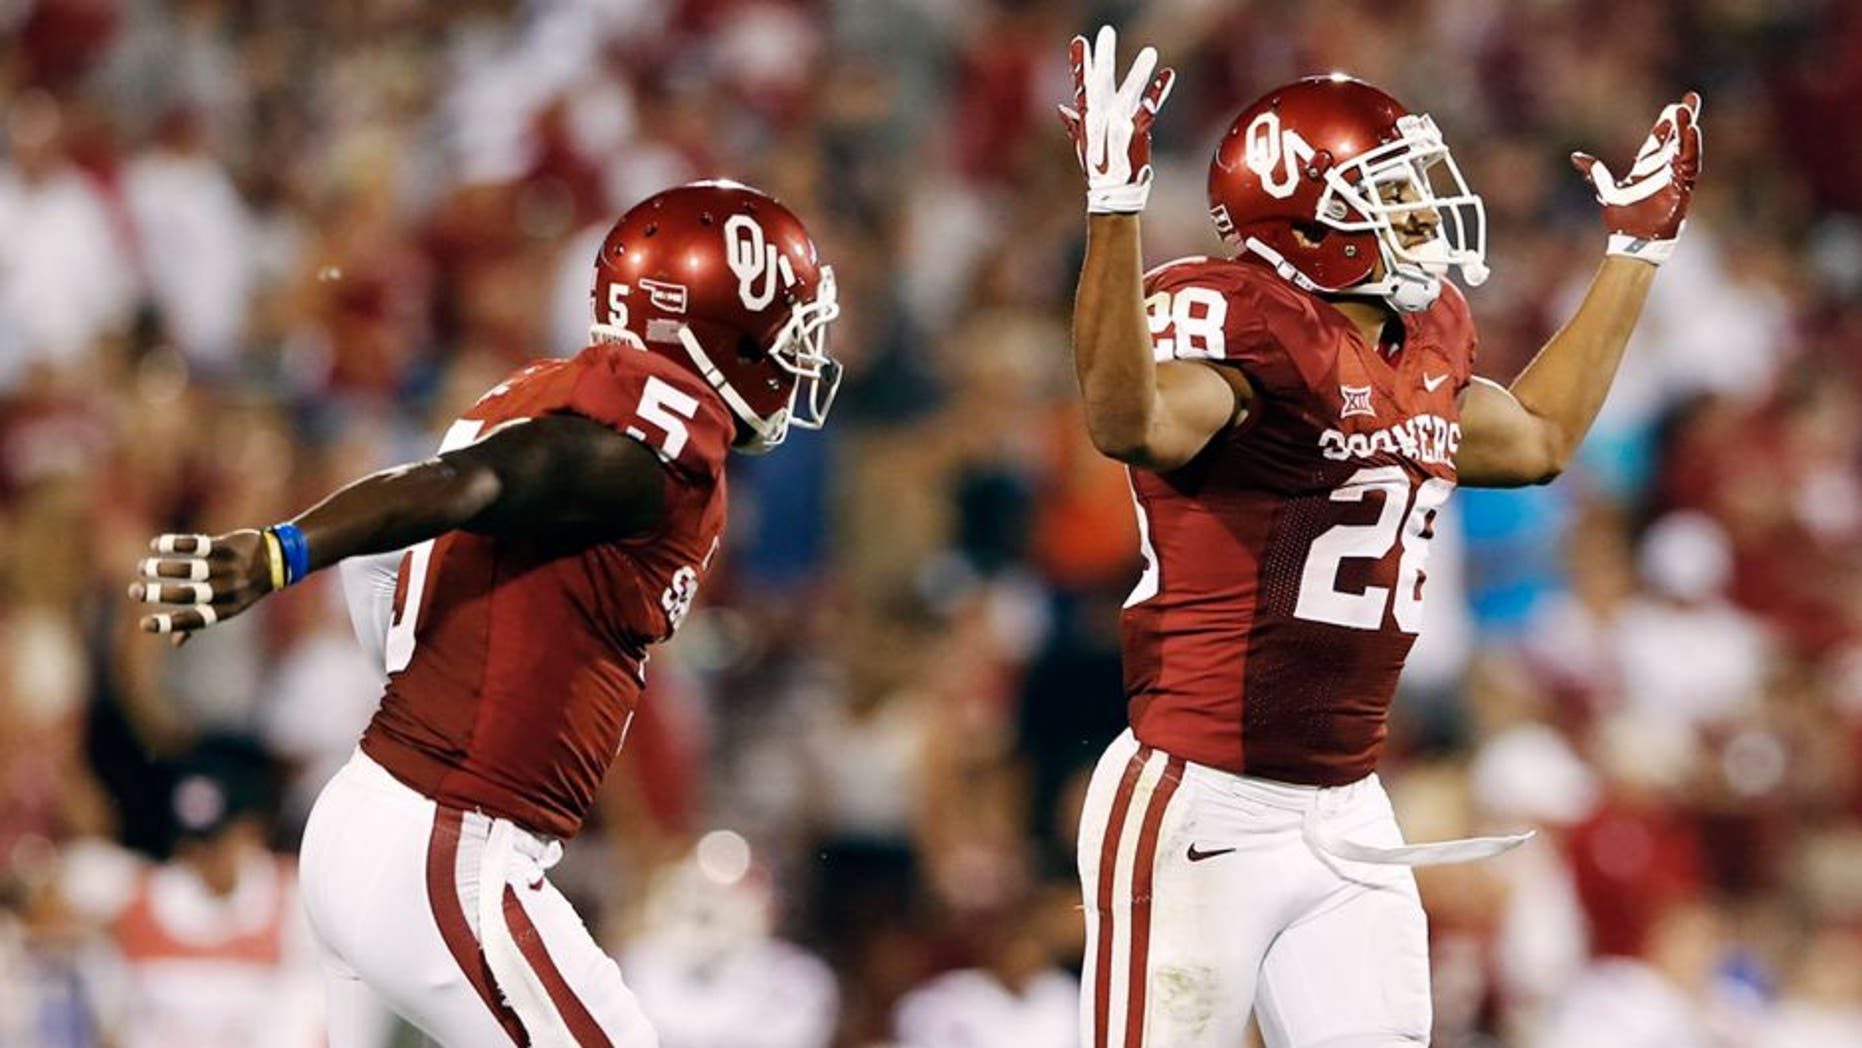 Aug 30, 2014; Norman, OK, USA; Oklahoma Sooners running back Alex Ross (28) celebrates with wide receiver Durron Neal (5) after returning a long punt during the game against the Louisiana Tech Bulldogs at Gaylord Family - Oklahoma Memorial Stadium. Mandatory Credit: Kevin Jairaj-USA TODAY Sports